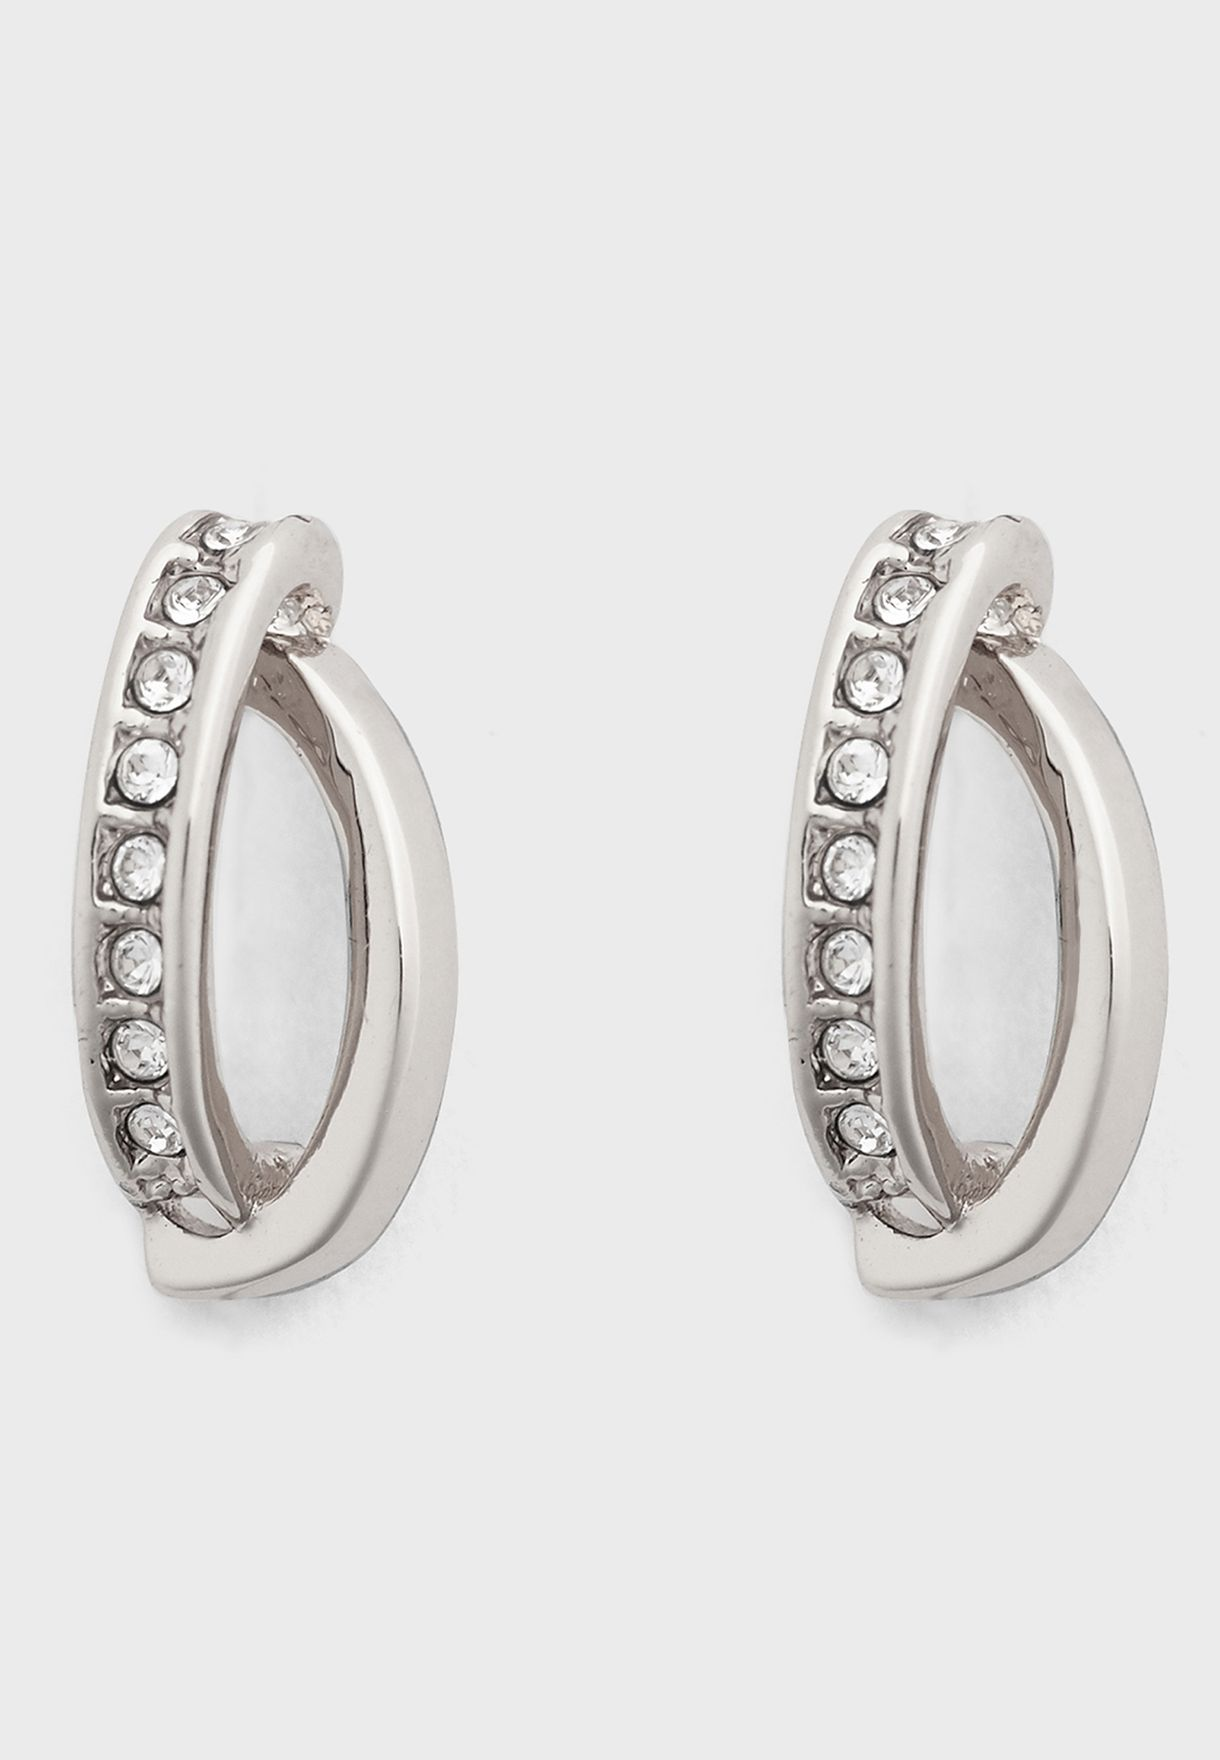 Oval Pave Chain Stud Earrings